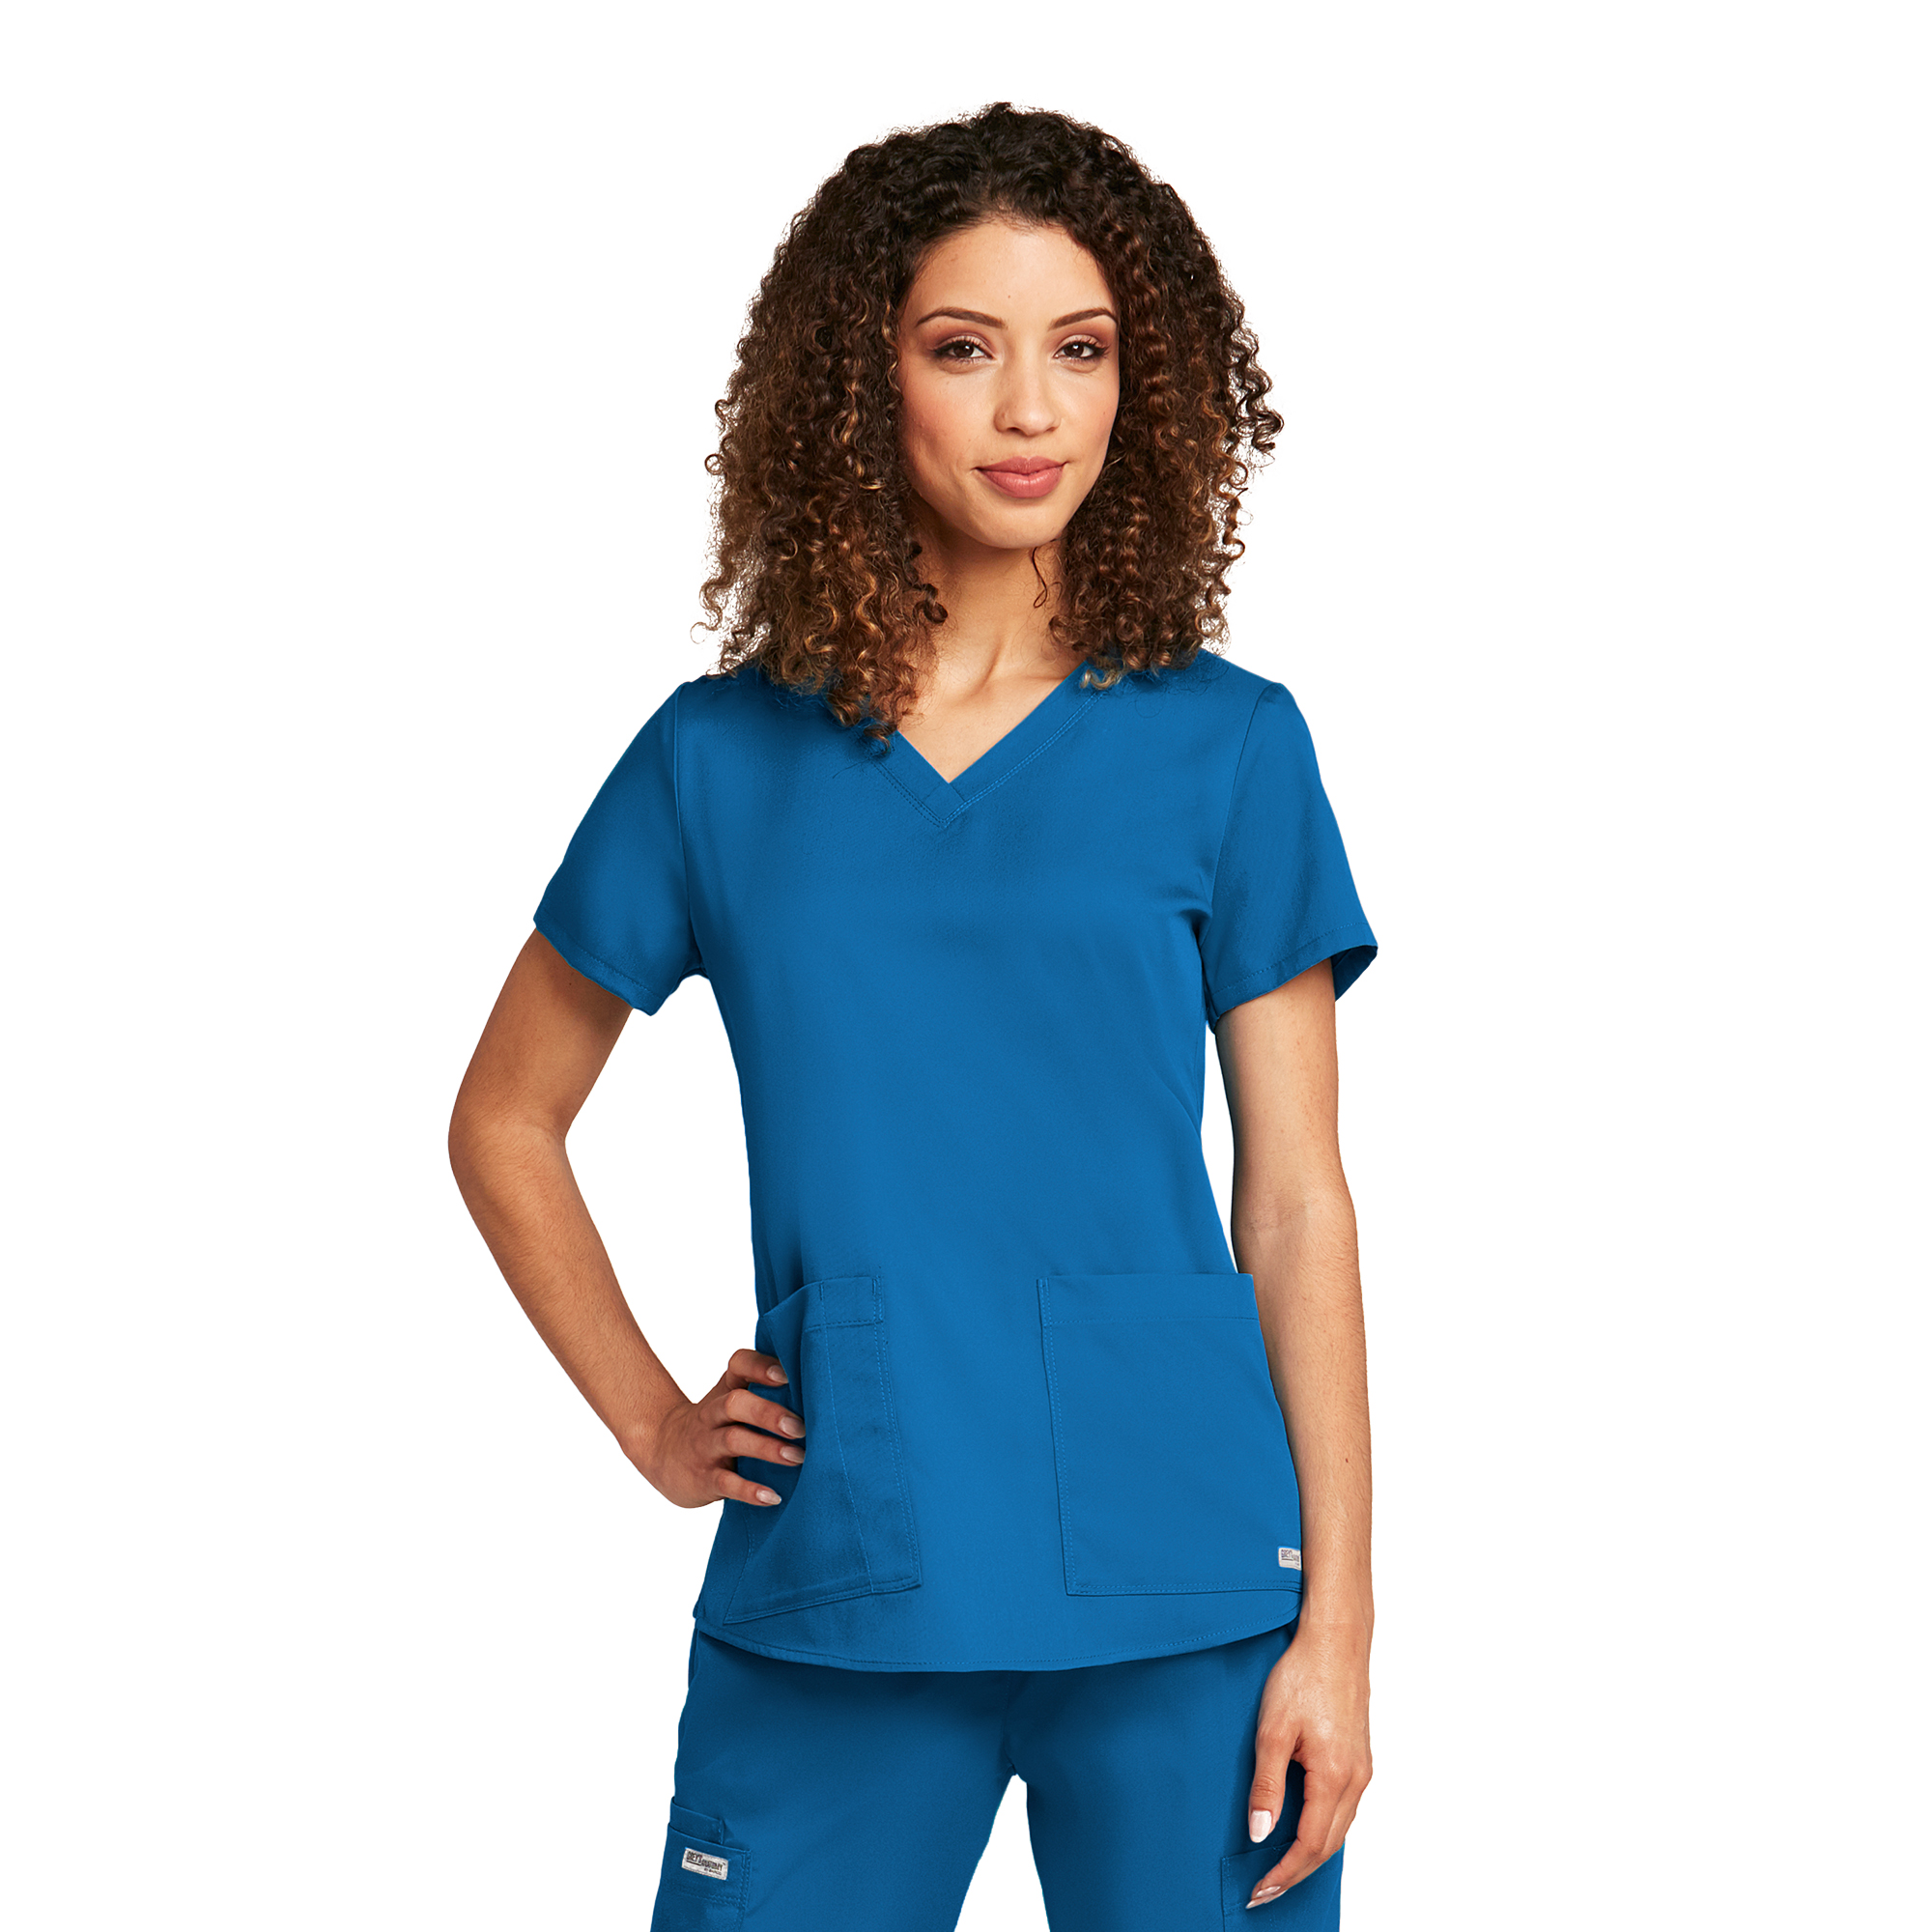 2 Pocket V-Neck Shirr Back-Greys Anatomy